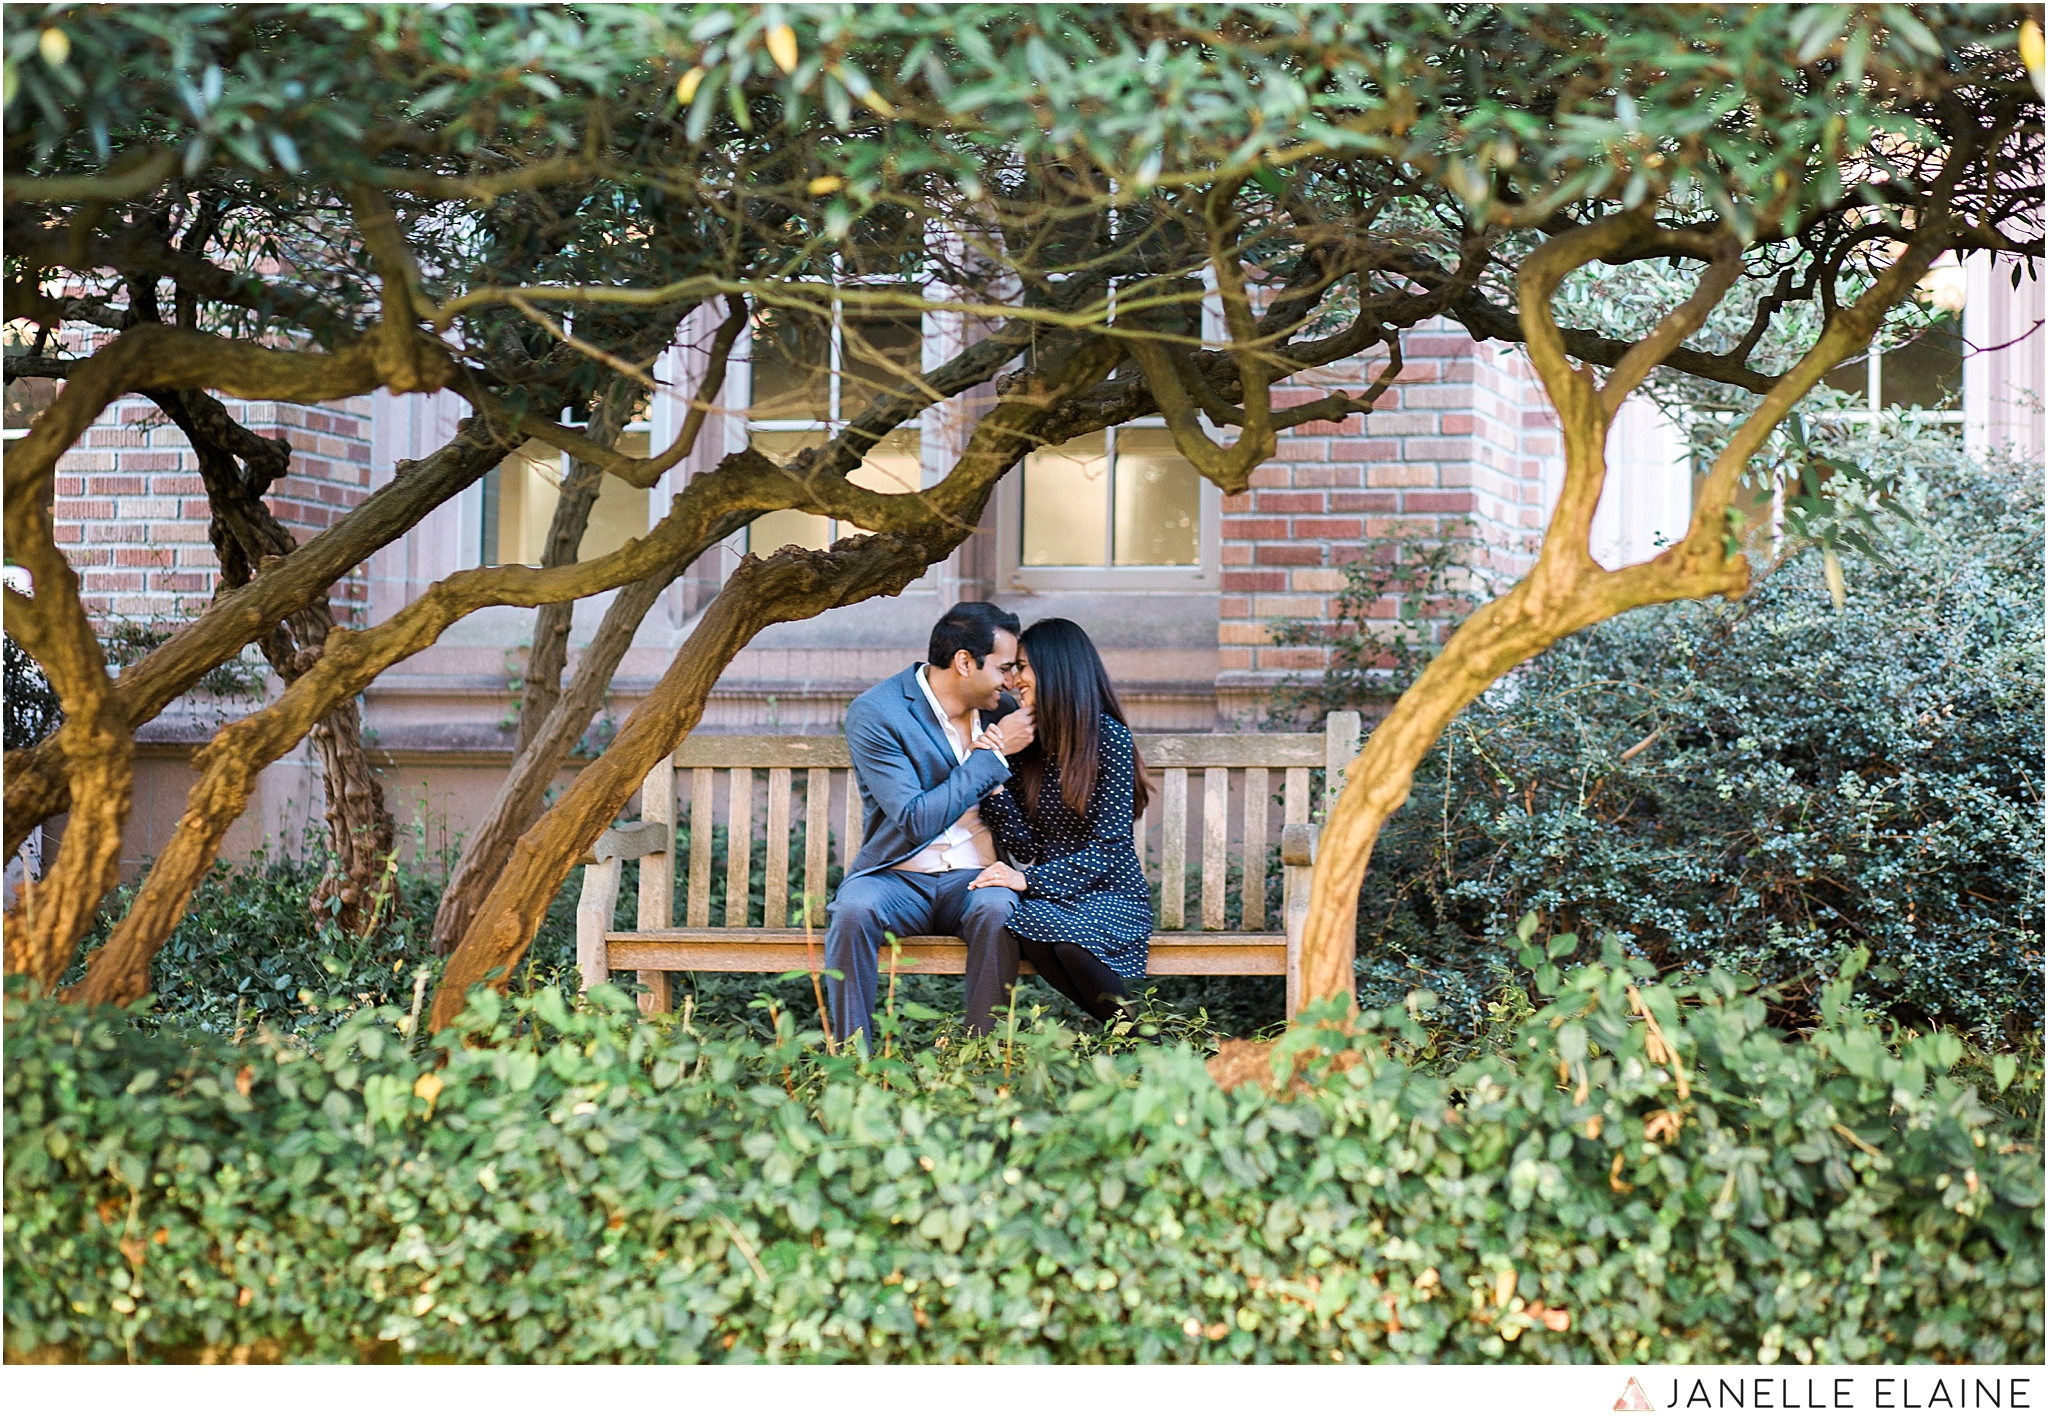 janelle elaine photography-zain and umema-seattle-uw-red square-engagement-photographer-110.jpg